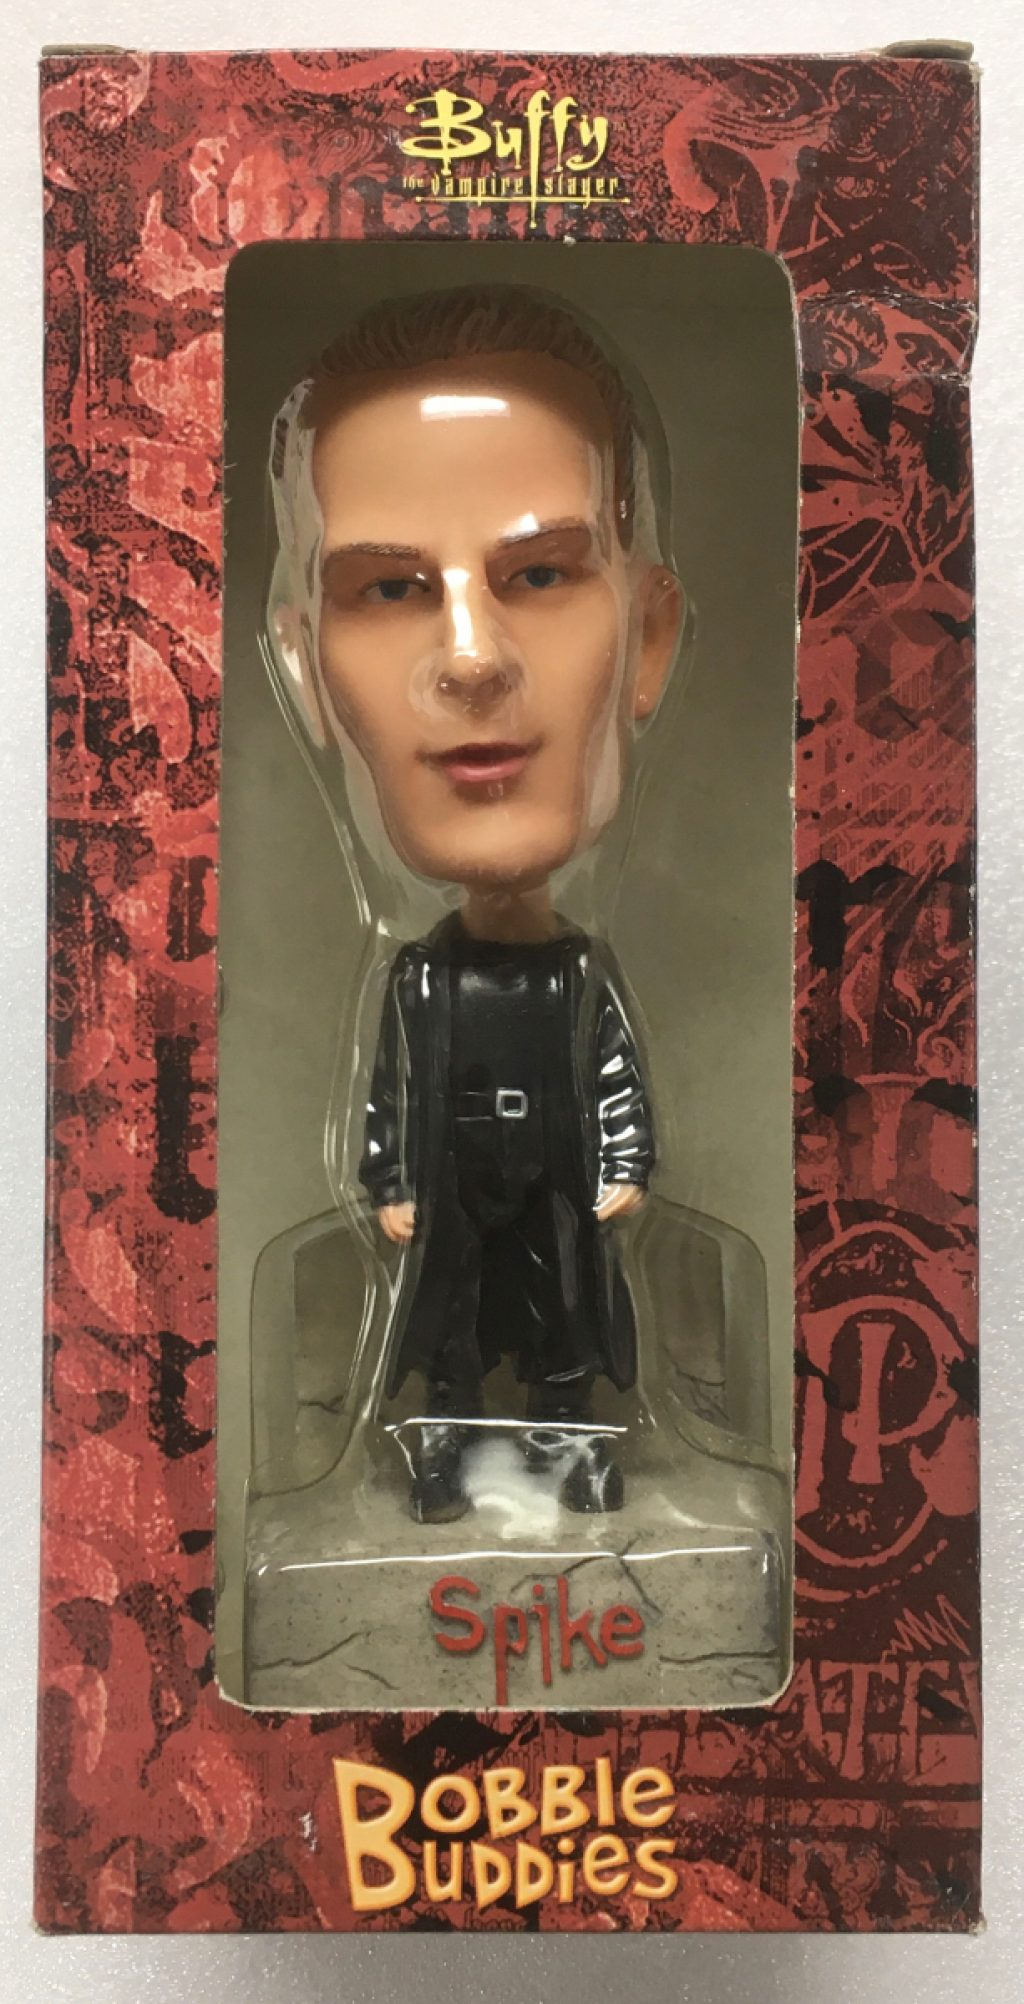 buffy the vampire slayer spike bobble buddies bobblehead